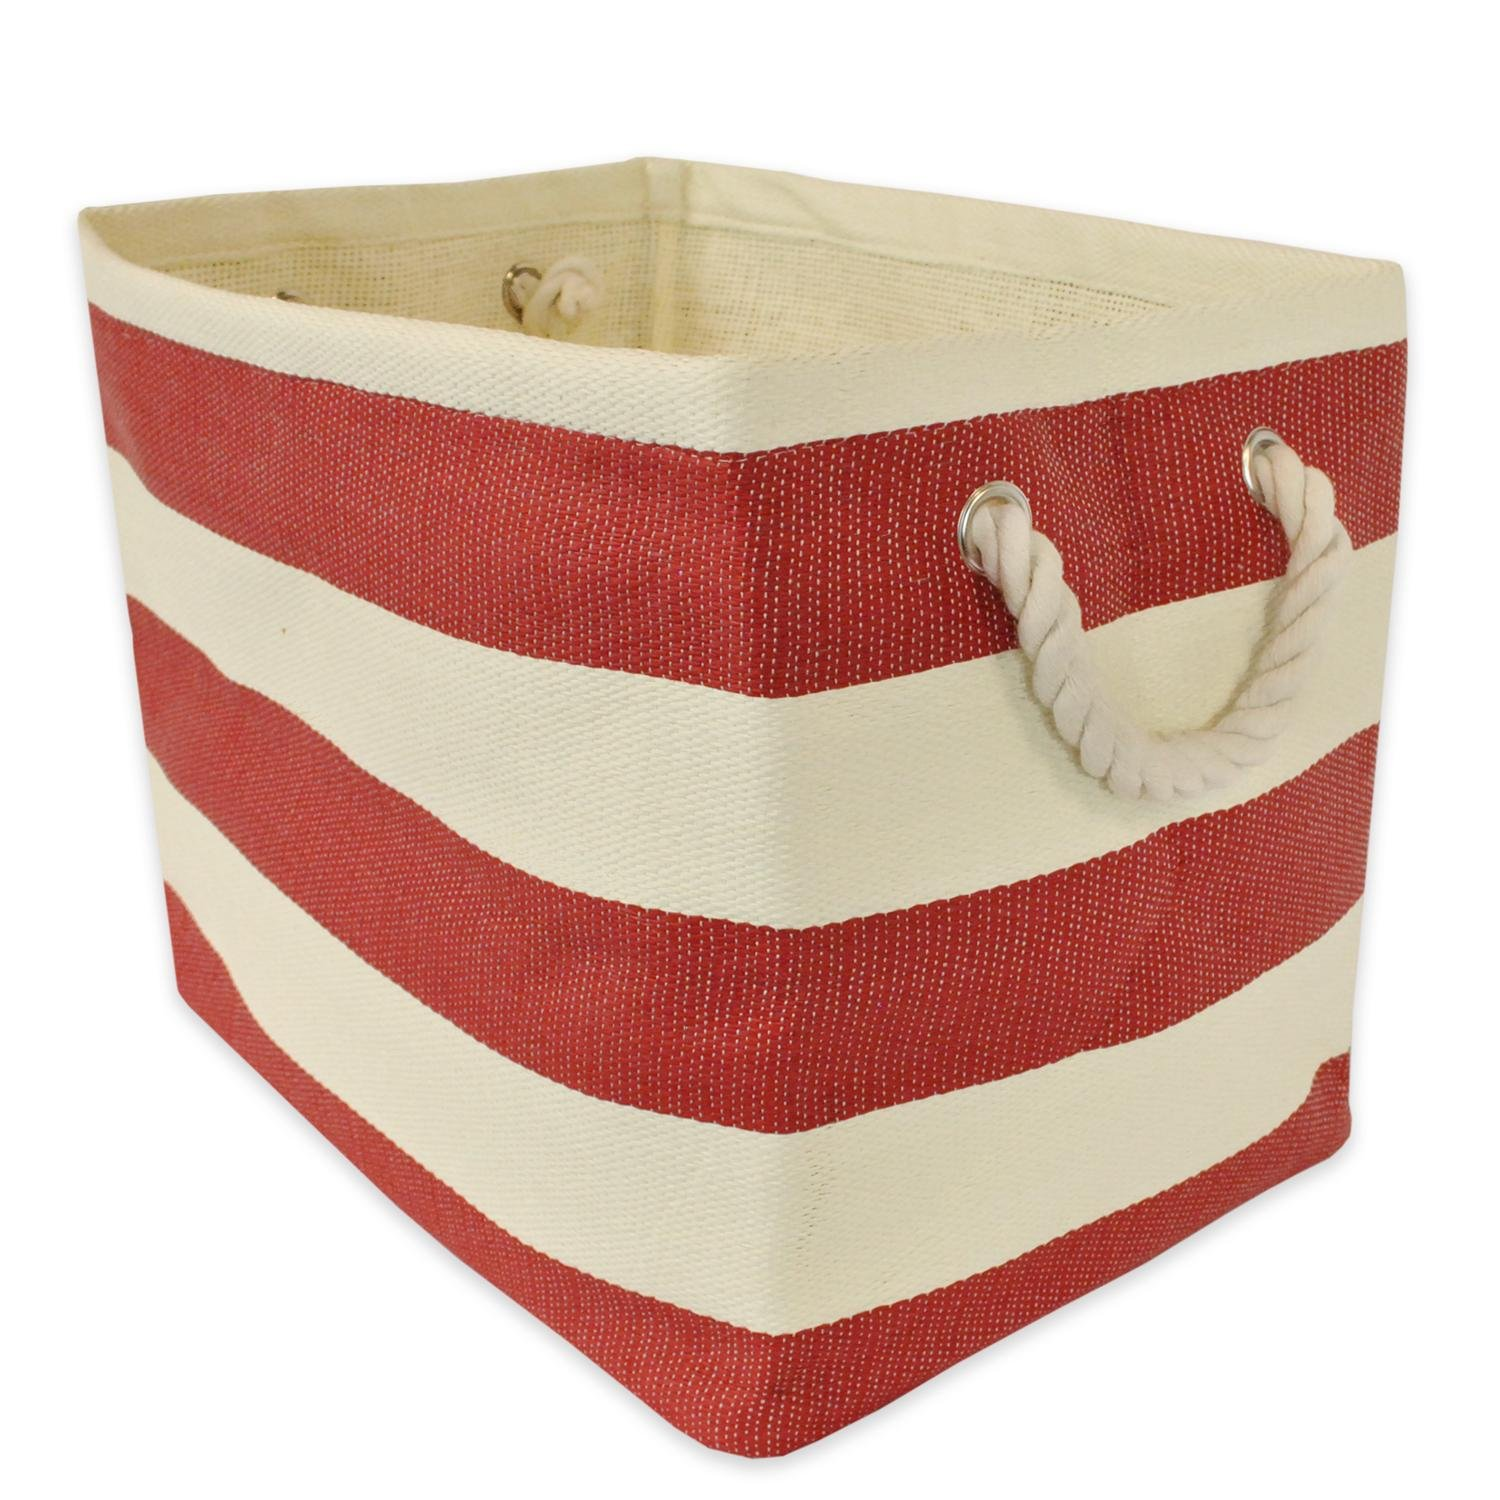 Diva At Home 17'' Tange Red and Ivory Striped Patterned Large Sized Rectangular Paper Basket